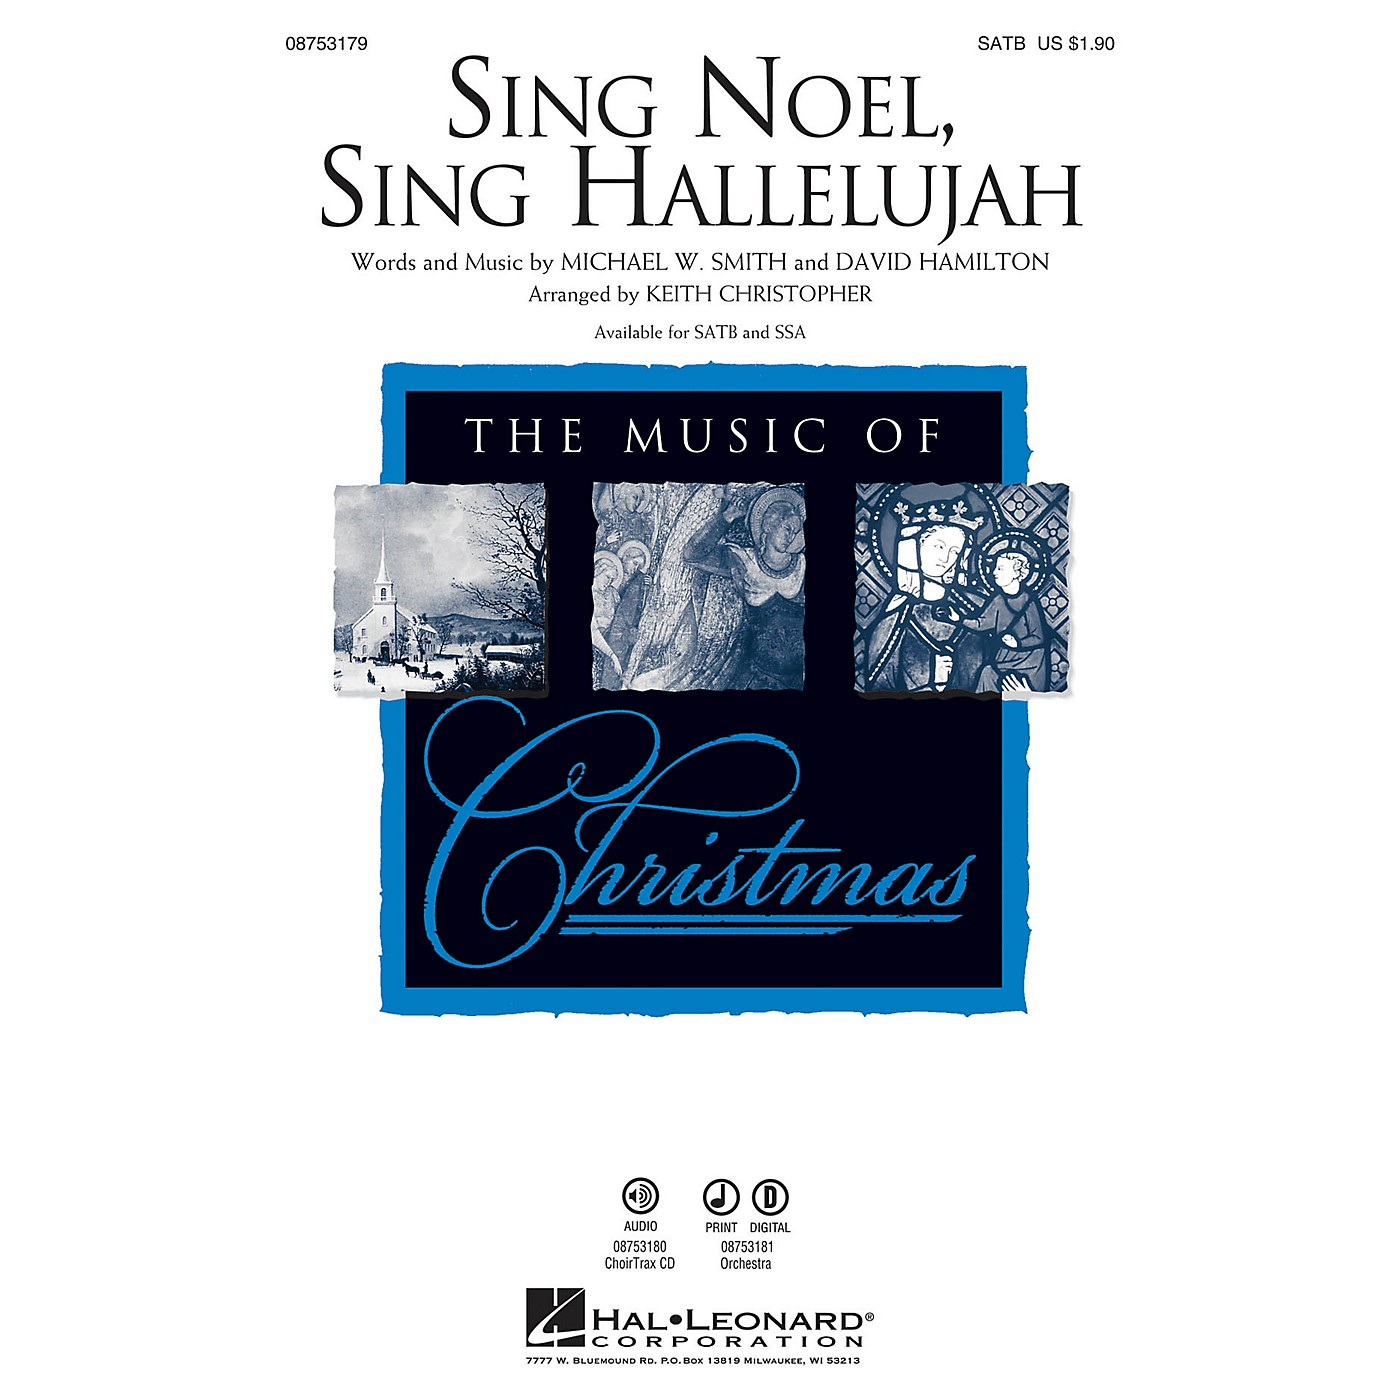 Hal Leonard Sing Noel, Sing Hallelujah SSA by Michael W. Smith Arranged by Keith Christopher thumbnail